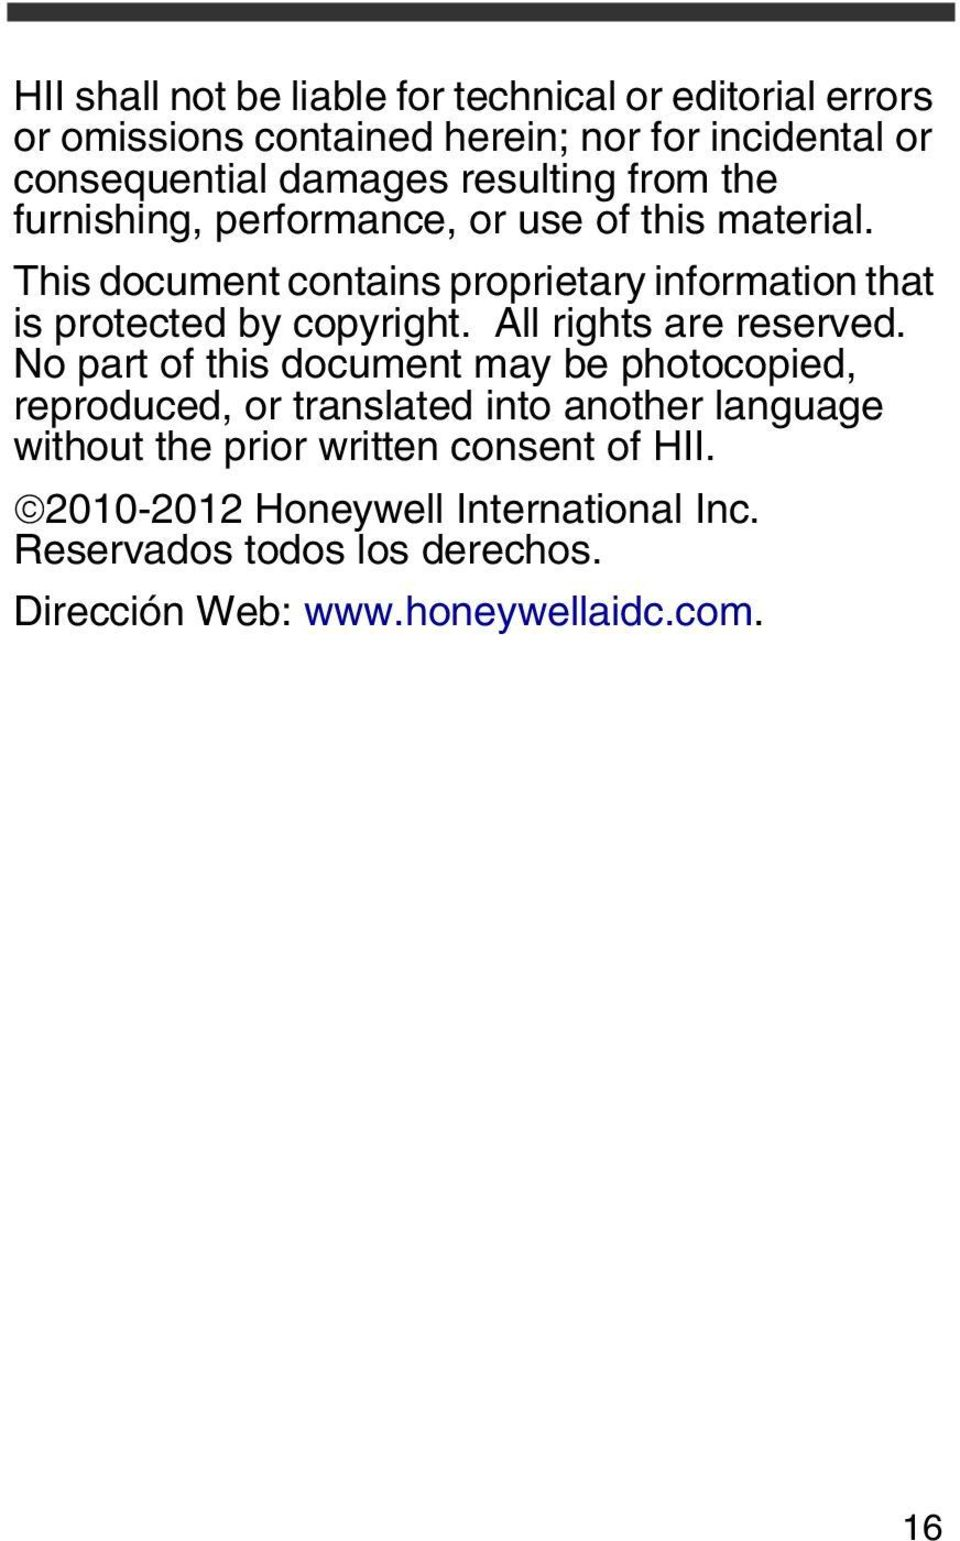 This document contains proprietary information that is protected by copyright. All rights are reserved.